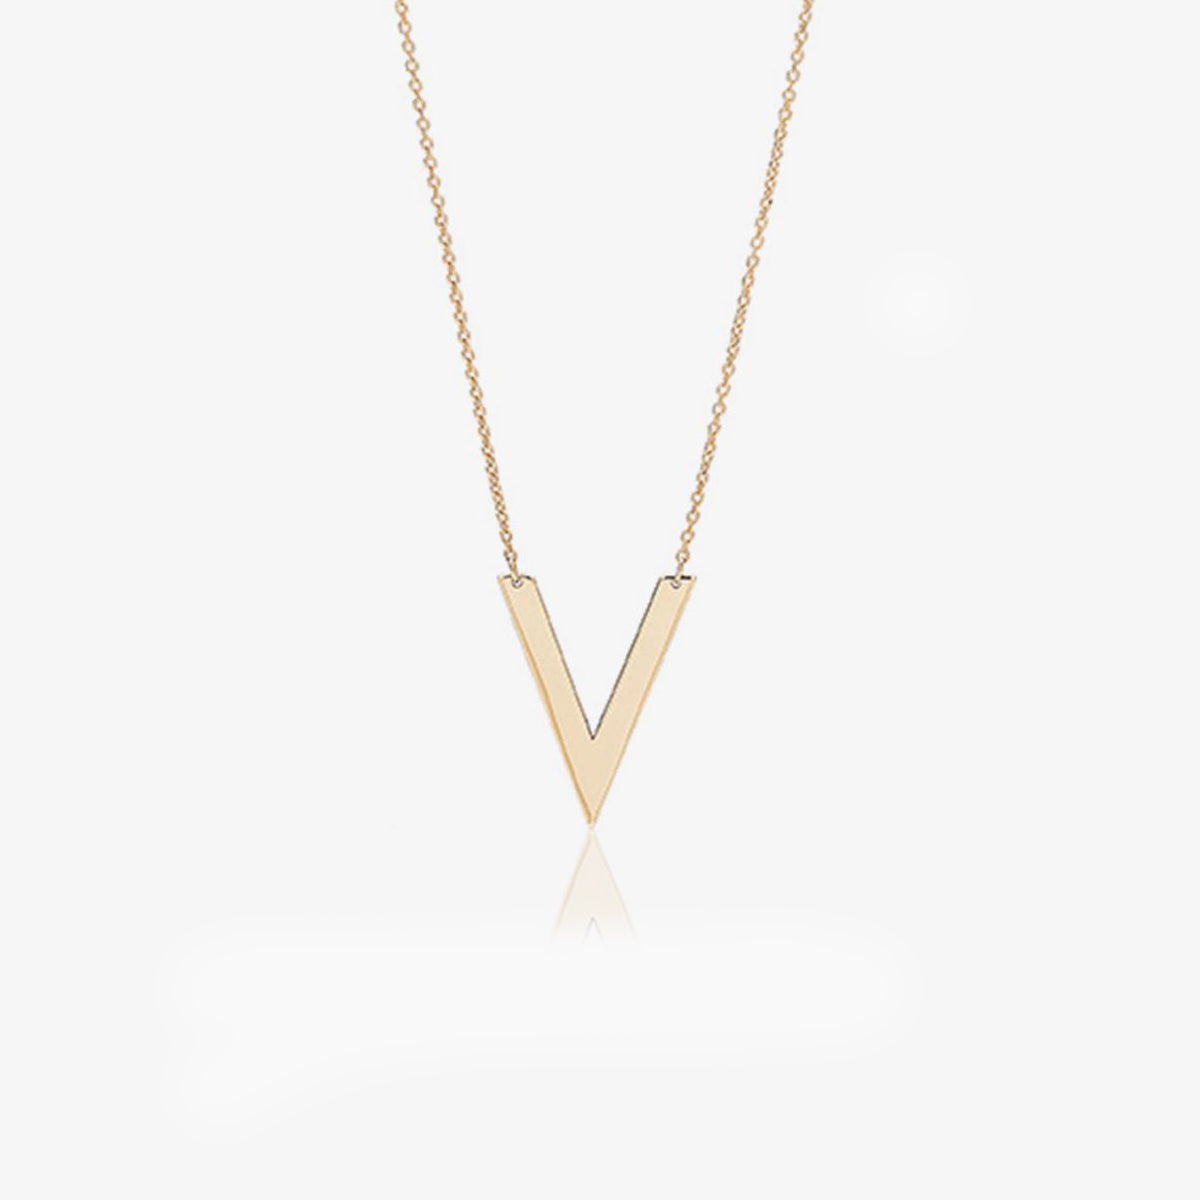 10K Solid Gold V Shape Layering Necklace - estellacollection